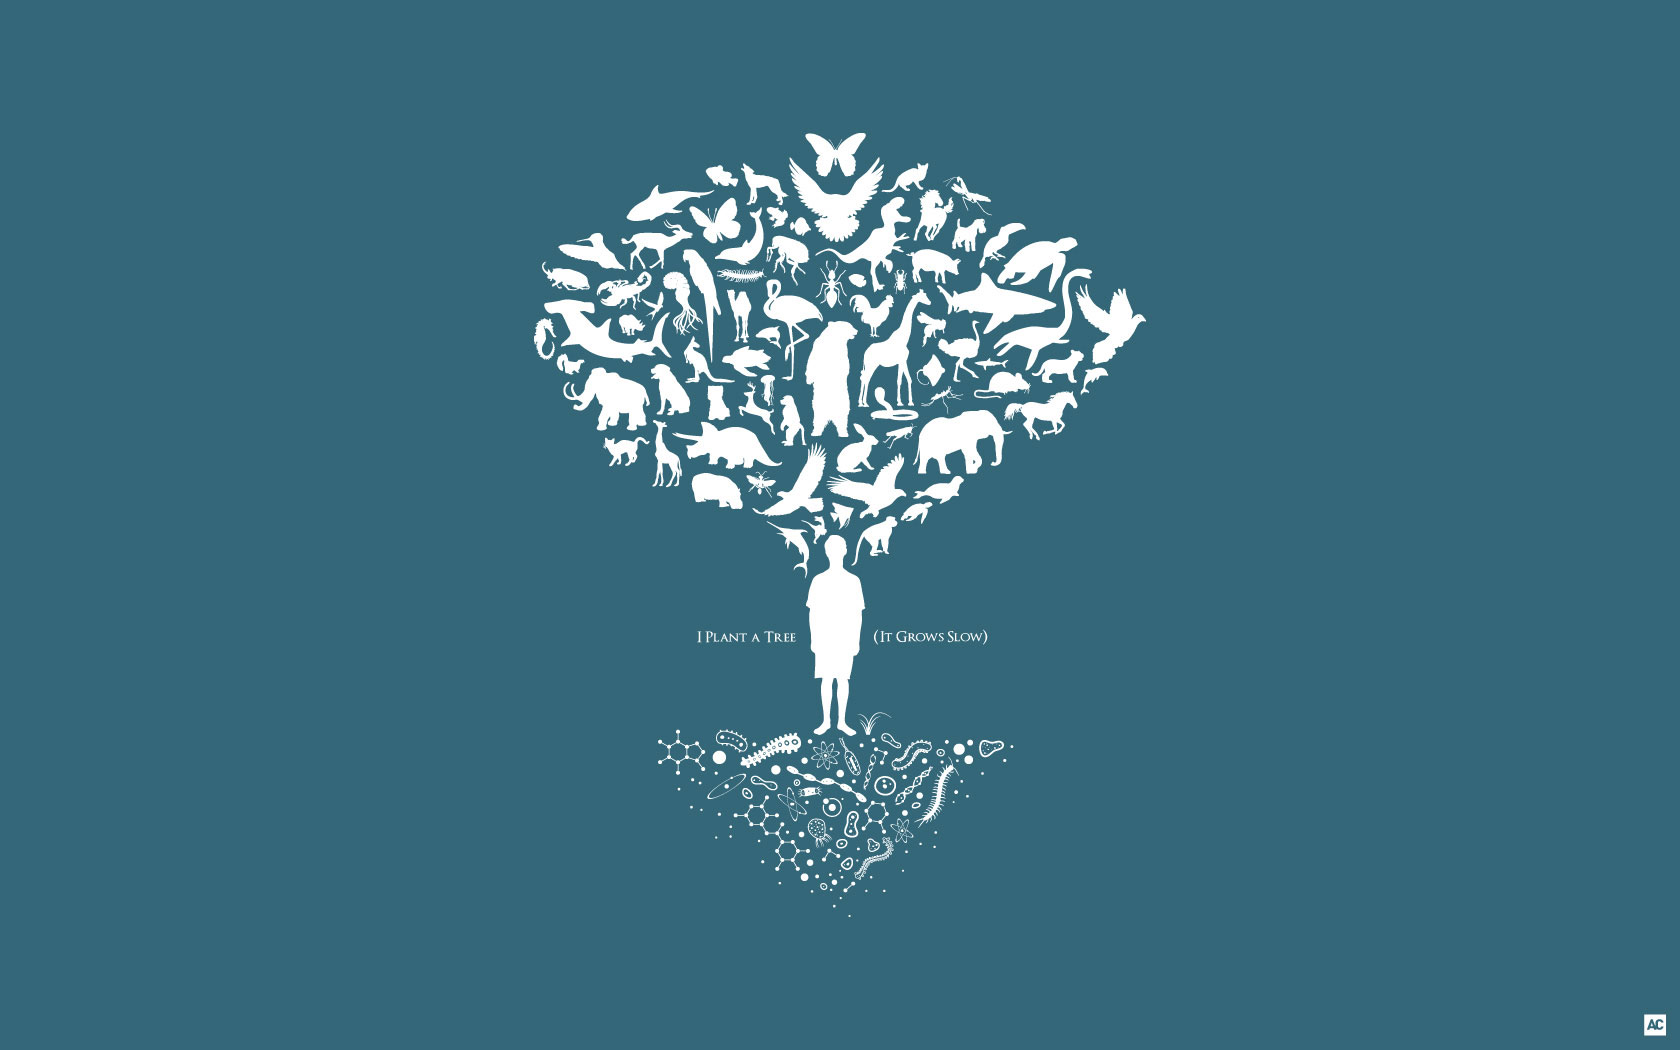 acarrozzo Wallpaper Design - Tree of Life, I plant a tree, it grows slow